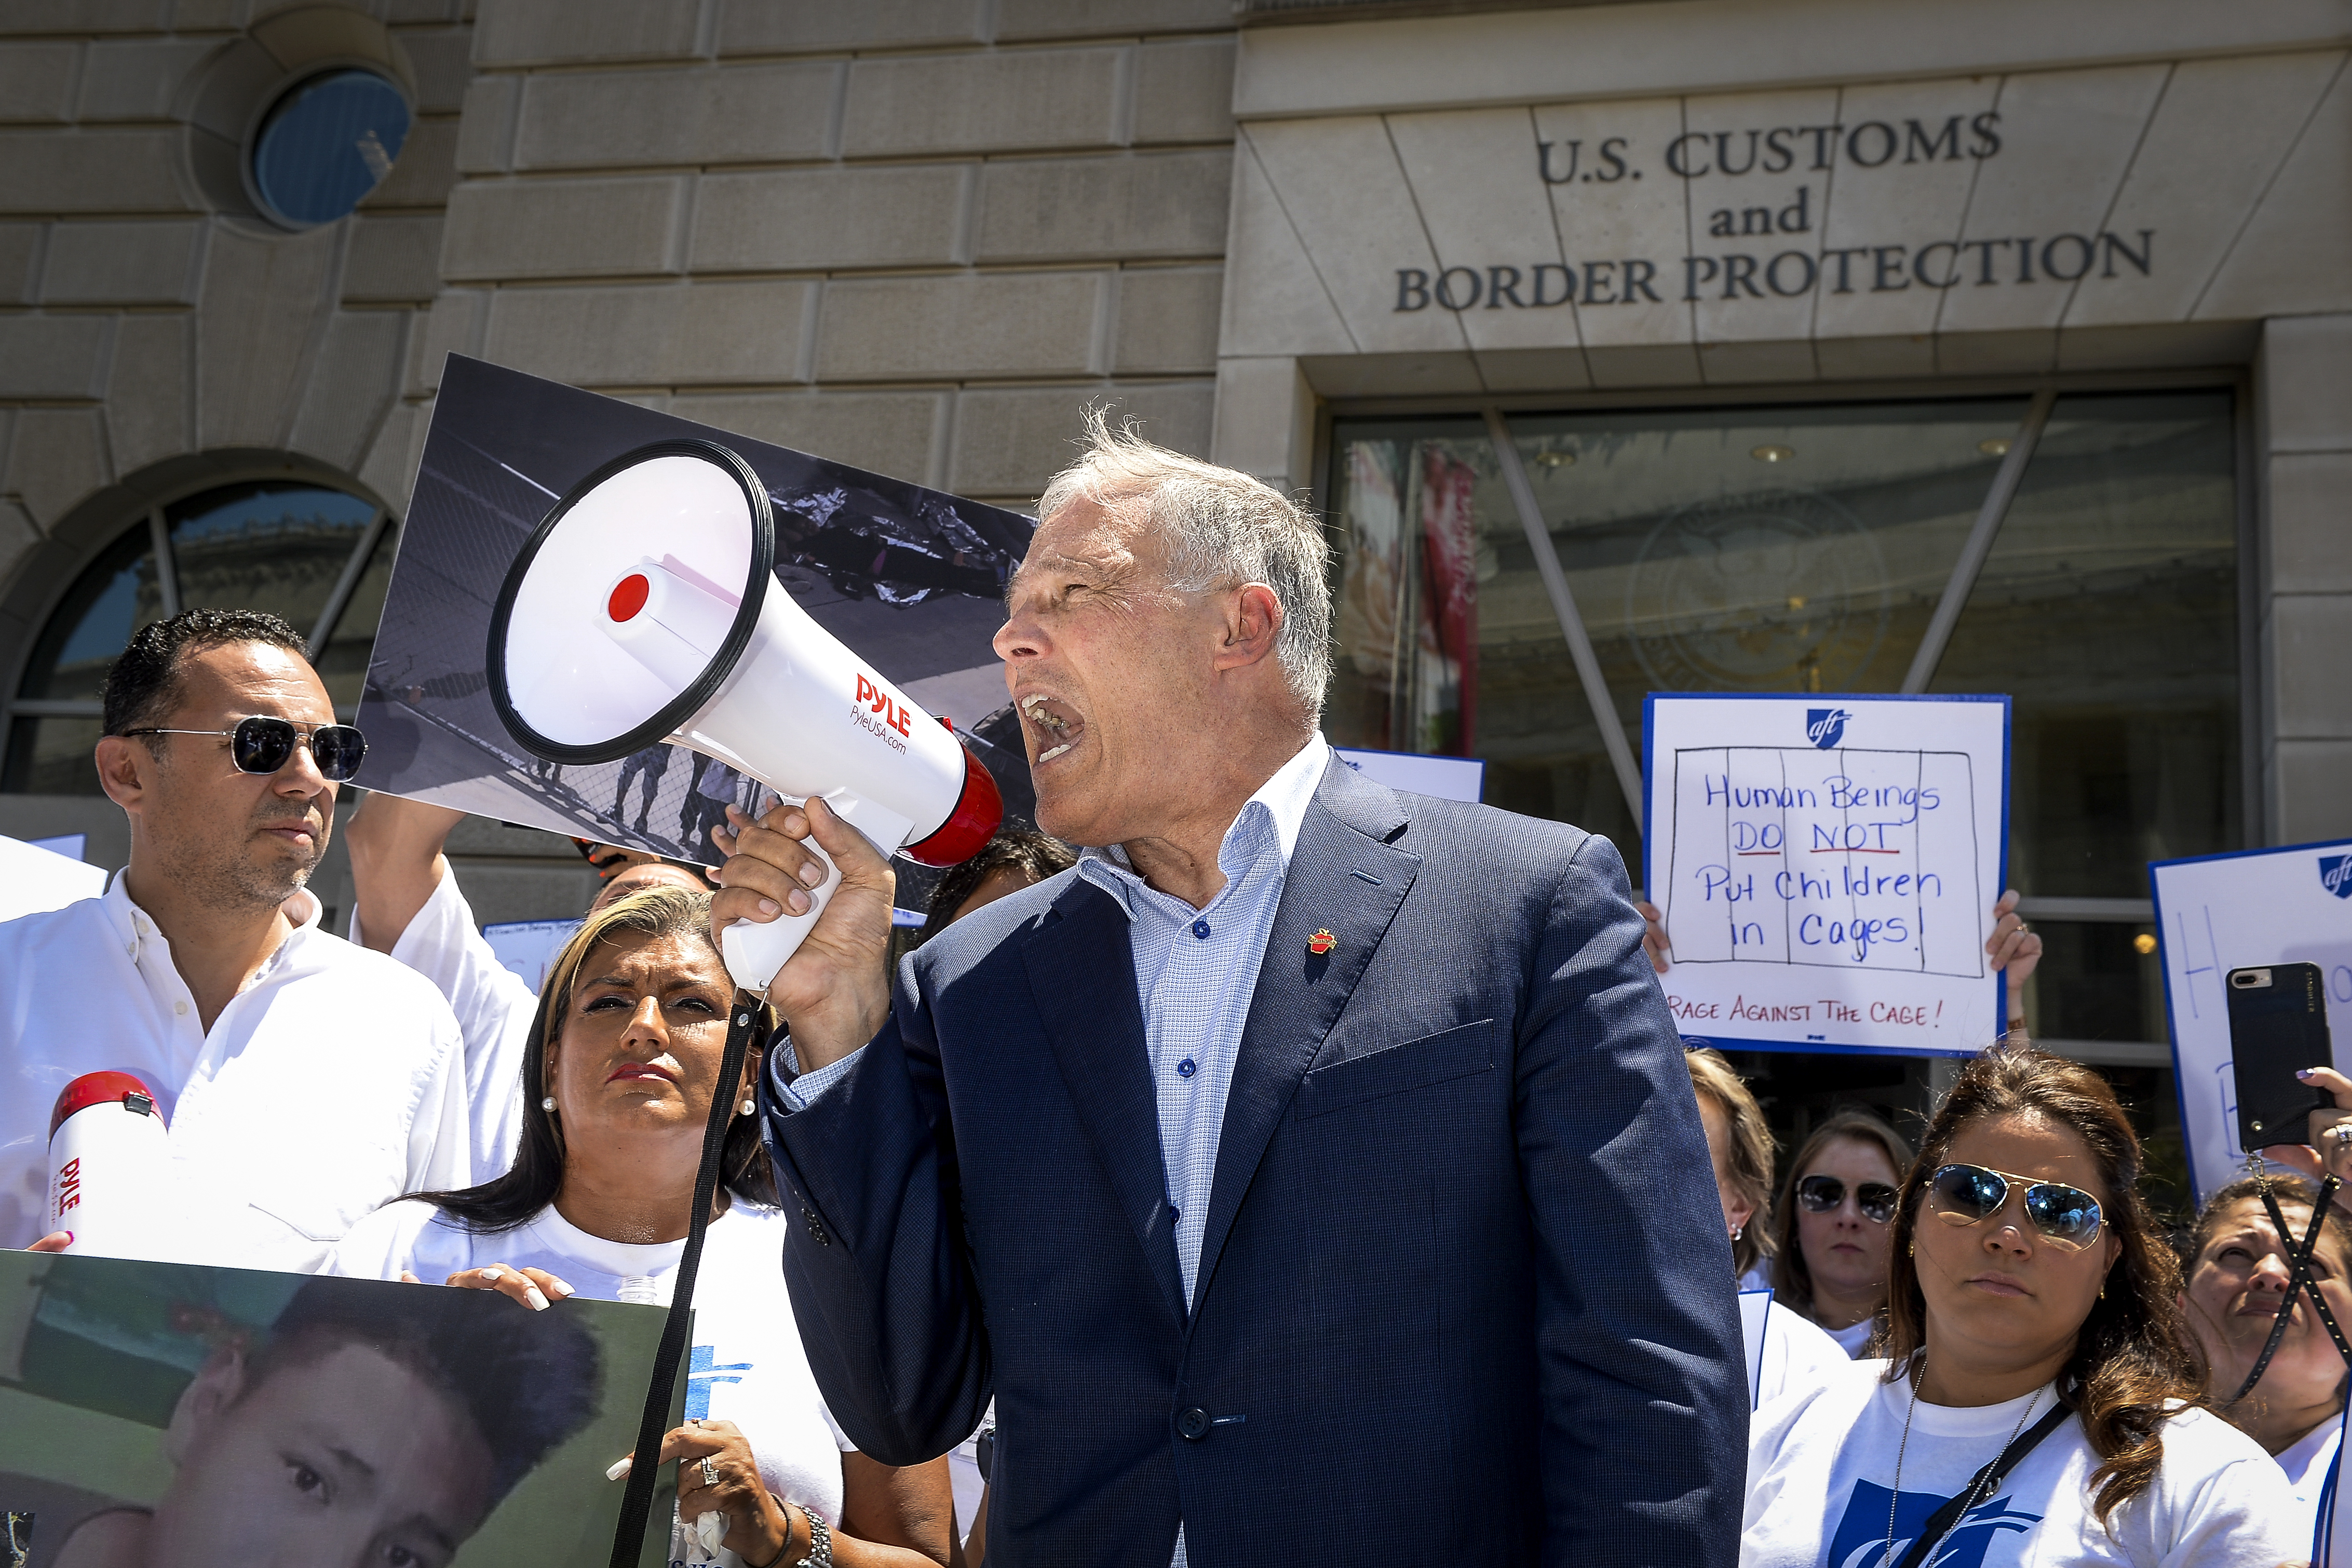 Democratic presidential candidate Washington Gov. Jay Inslee speaks at a protest on President Trumps immigration policy outside of the U.S. Customs and Border Protection office in Washington on Friday July 12, 2019.